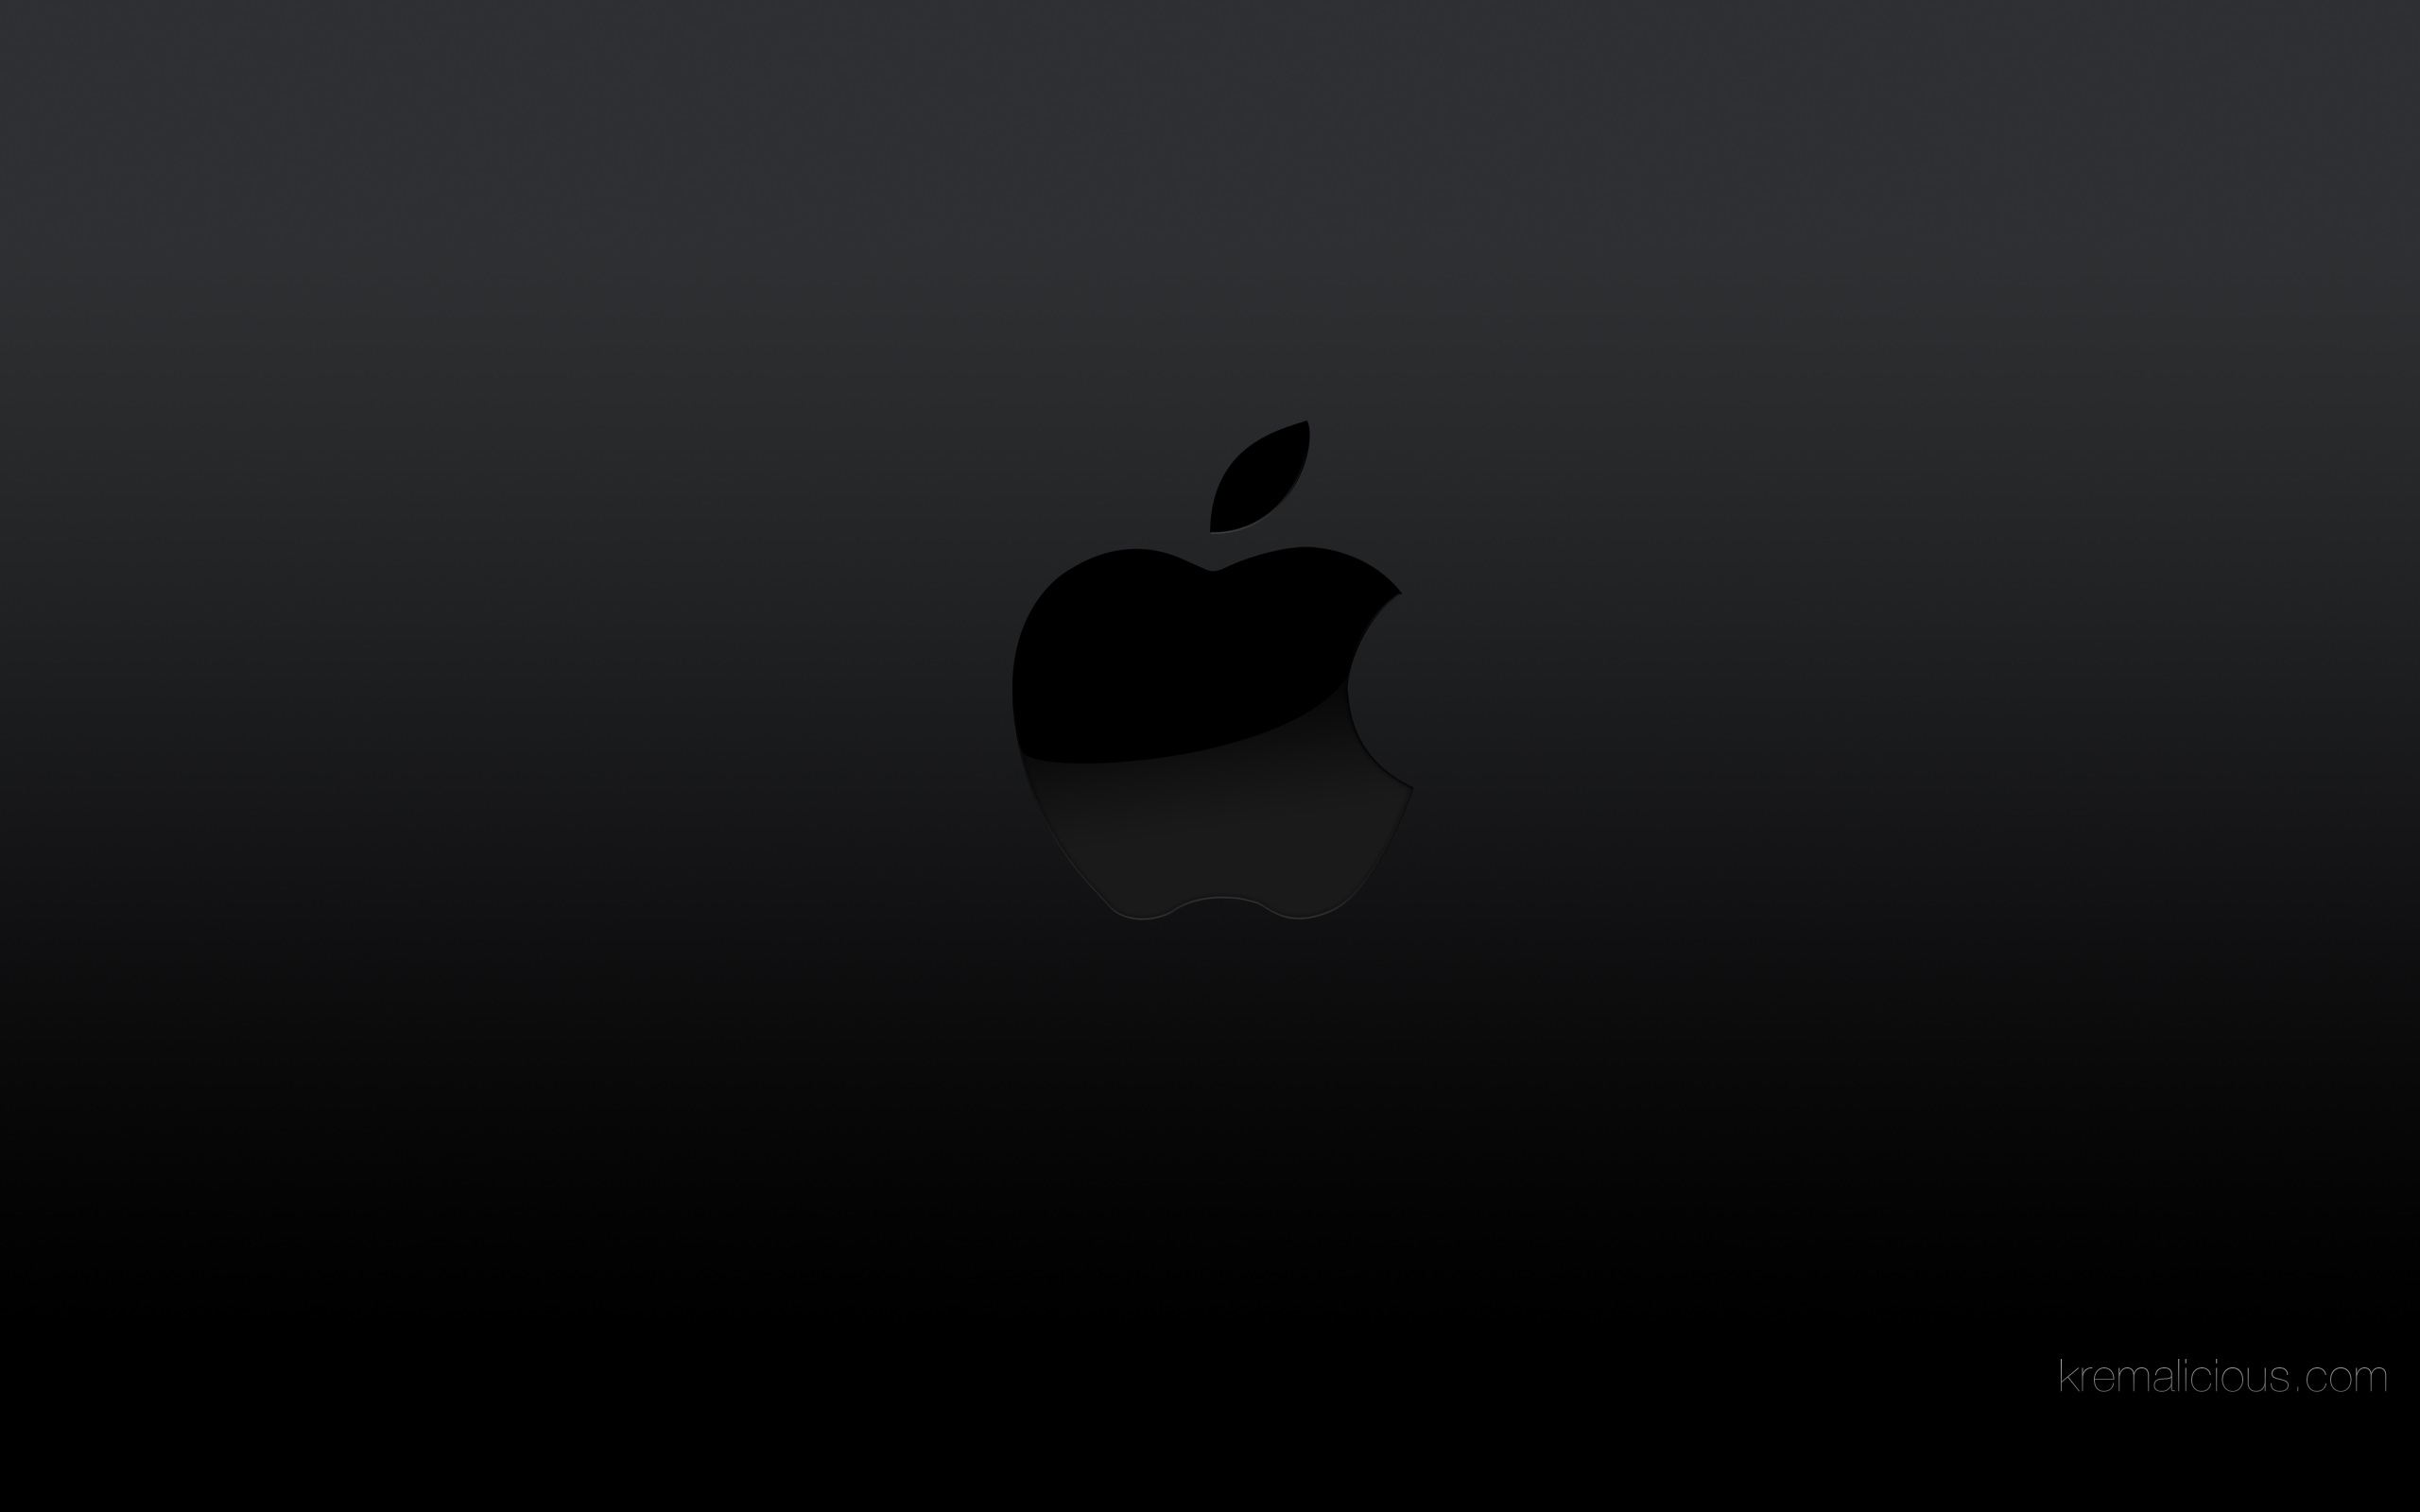 04 black apple logo wallpaper available in resolution 2560px 1600px